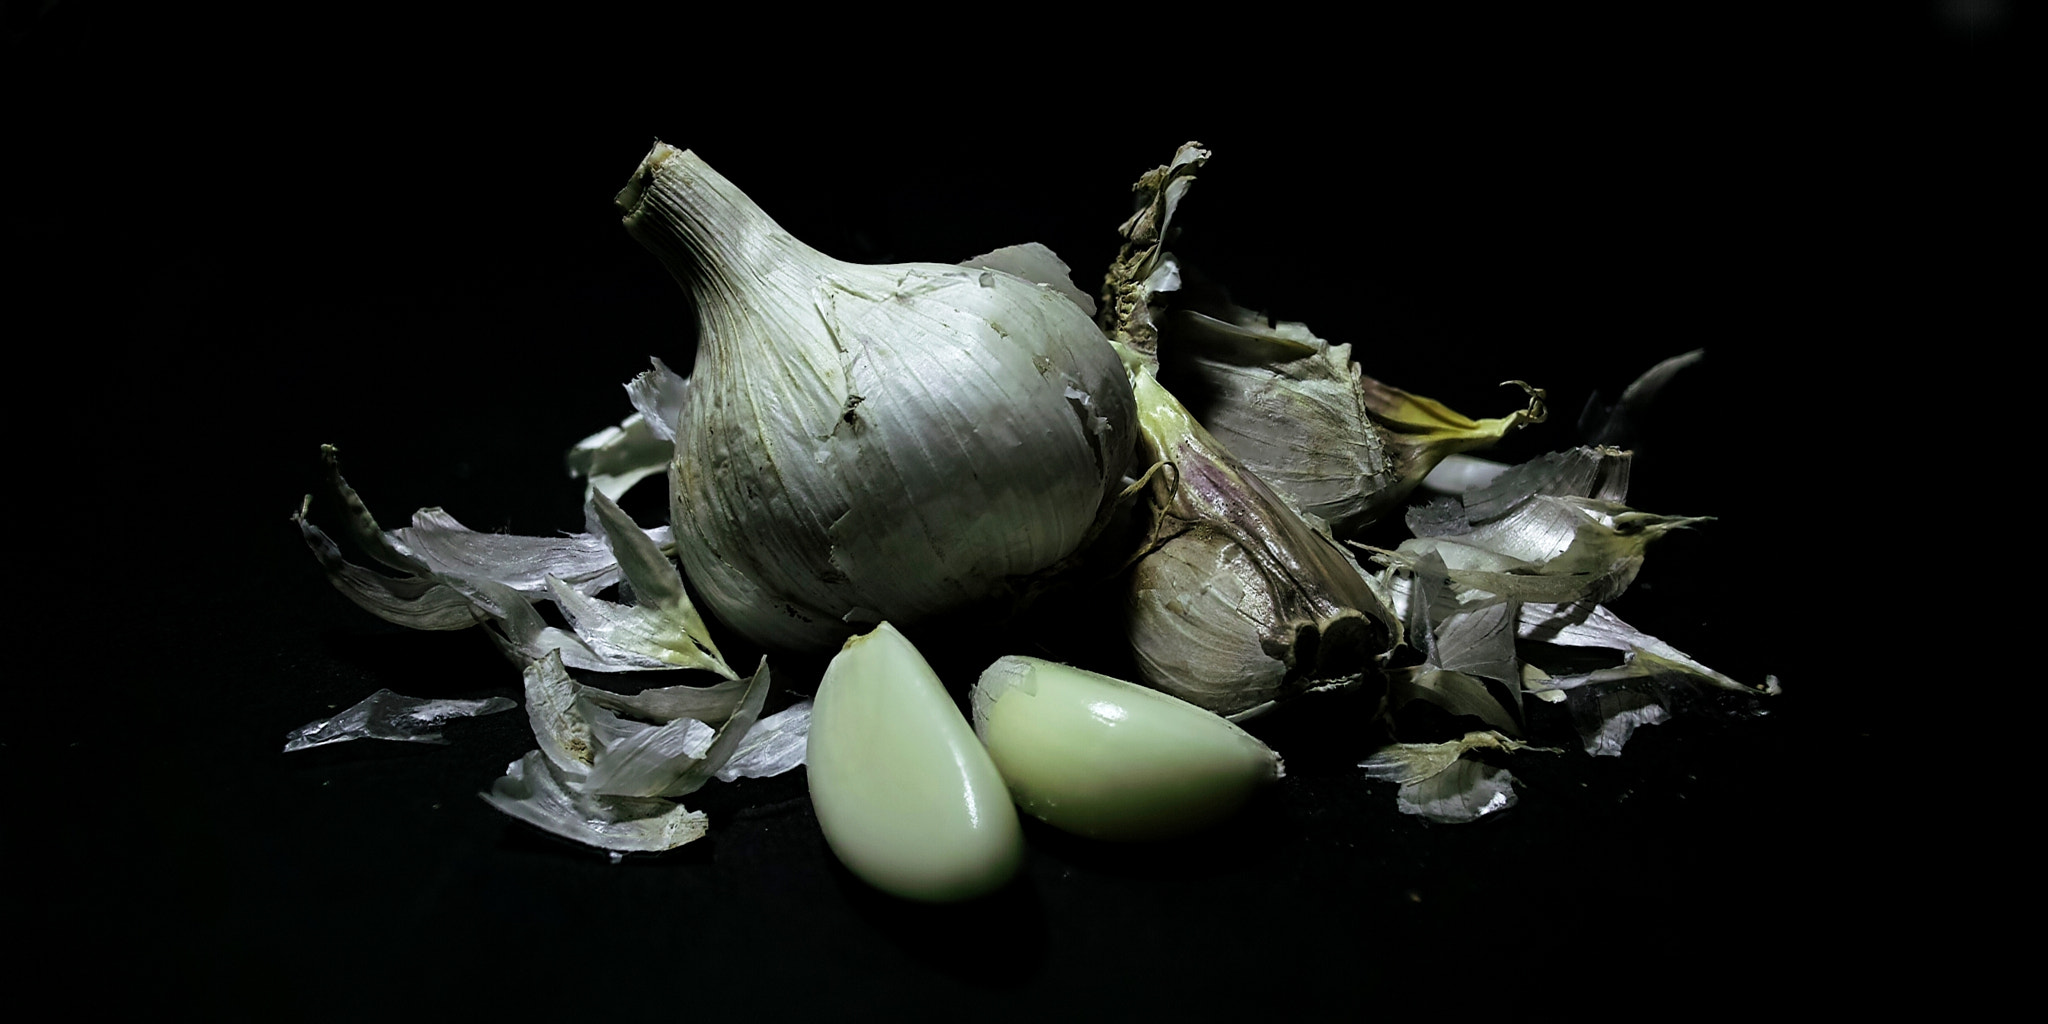 Photograph garlic by Tony. J. Lim on 500px